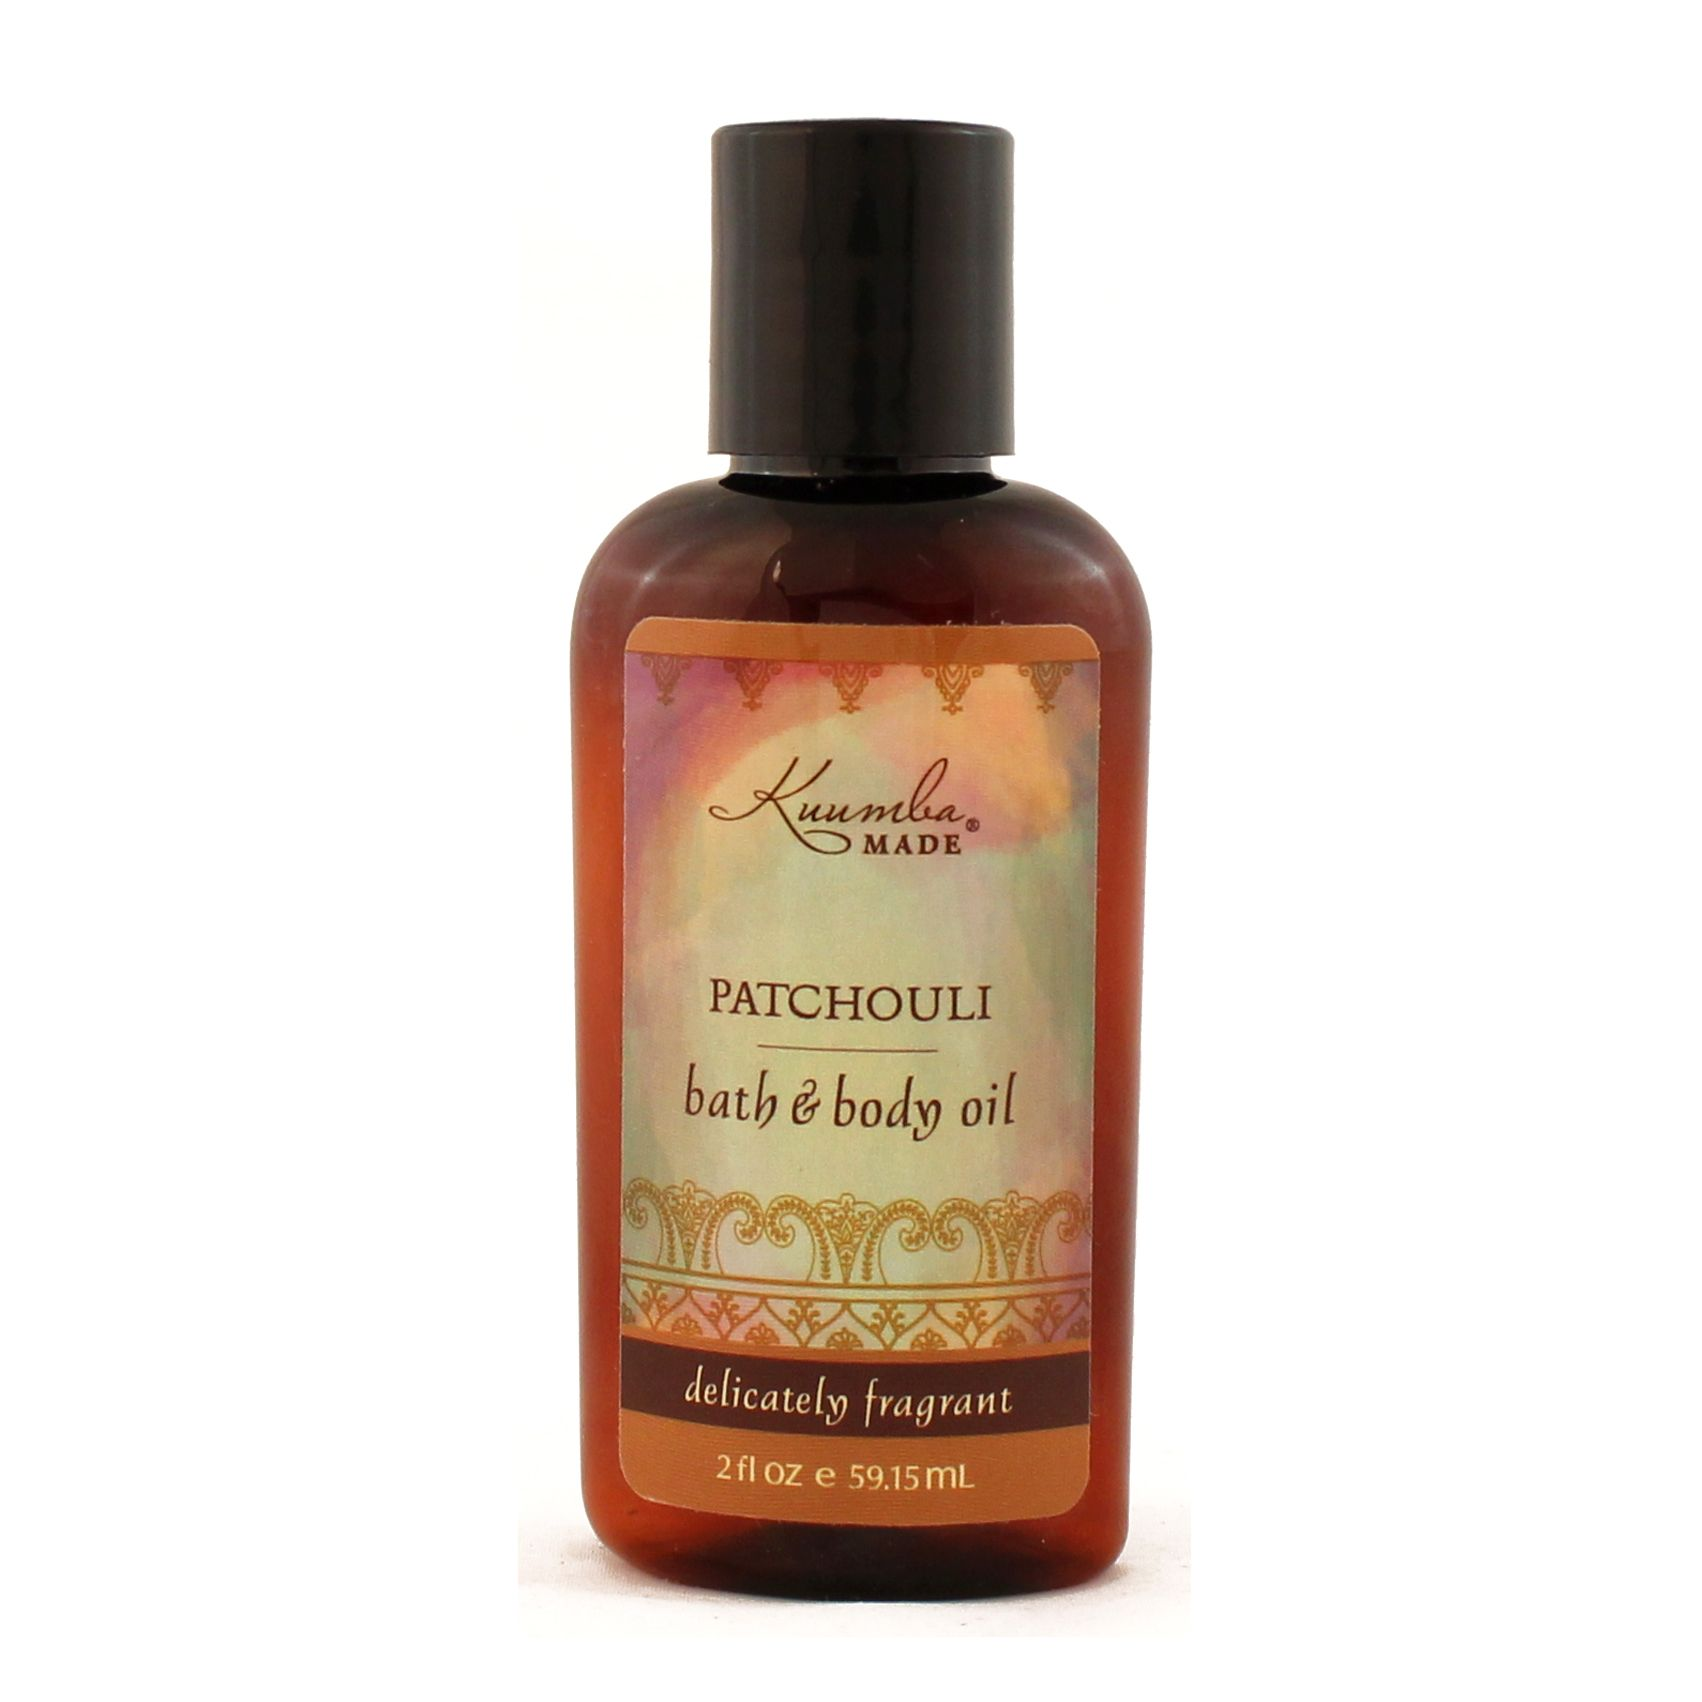 Patchouli Bath and Body Oil by Kuumba Made warms the heart and grounds the senses. Our versatile Organic Bath and Body Oil are packed with moisturizing agents that leave skin and hair radiant, healthy and softly aromatic. www.kuumbamade.com